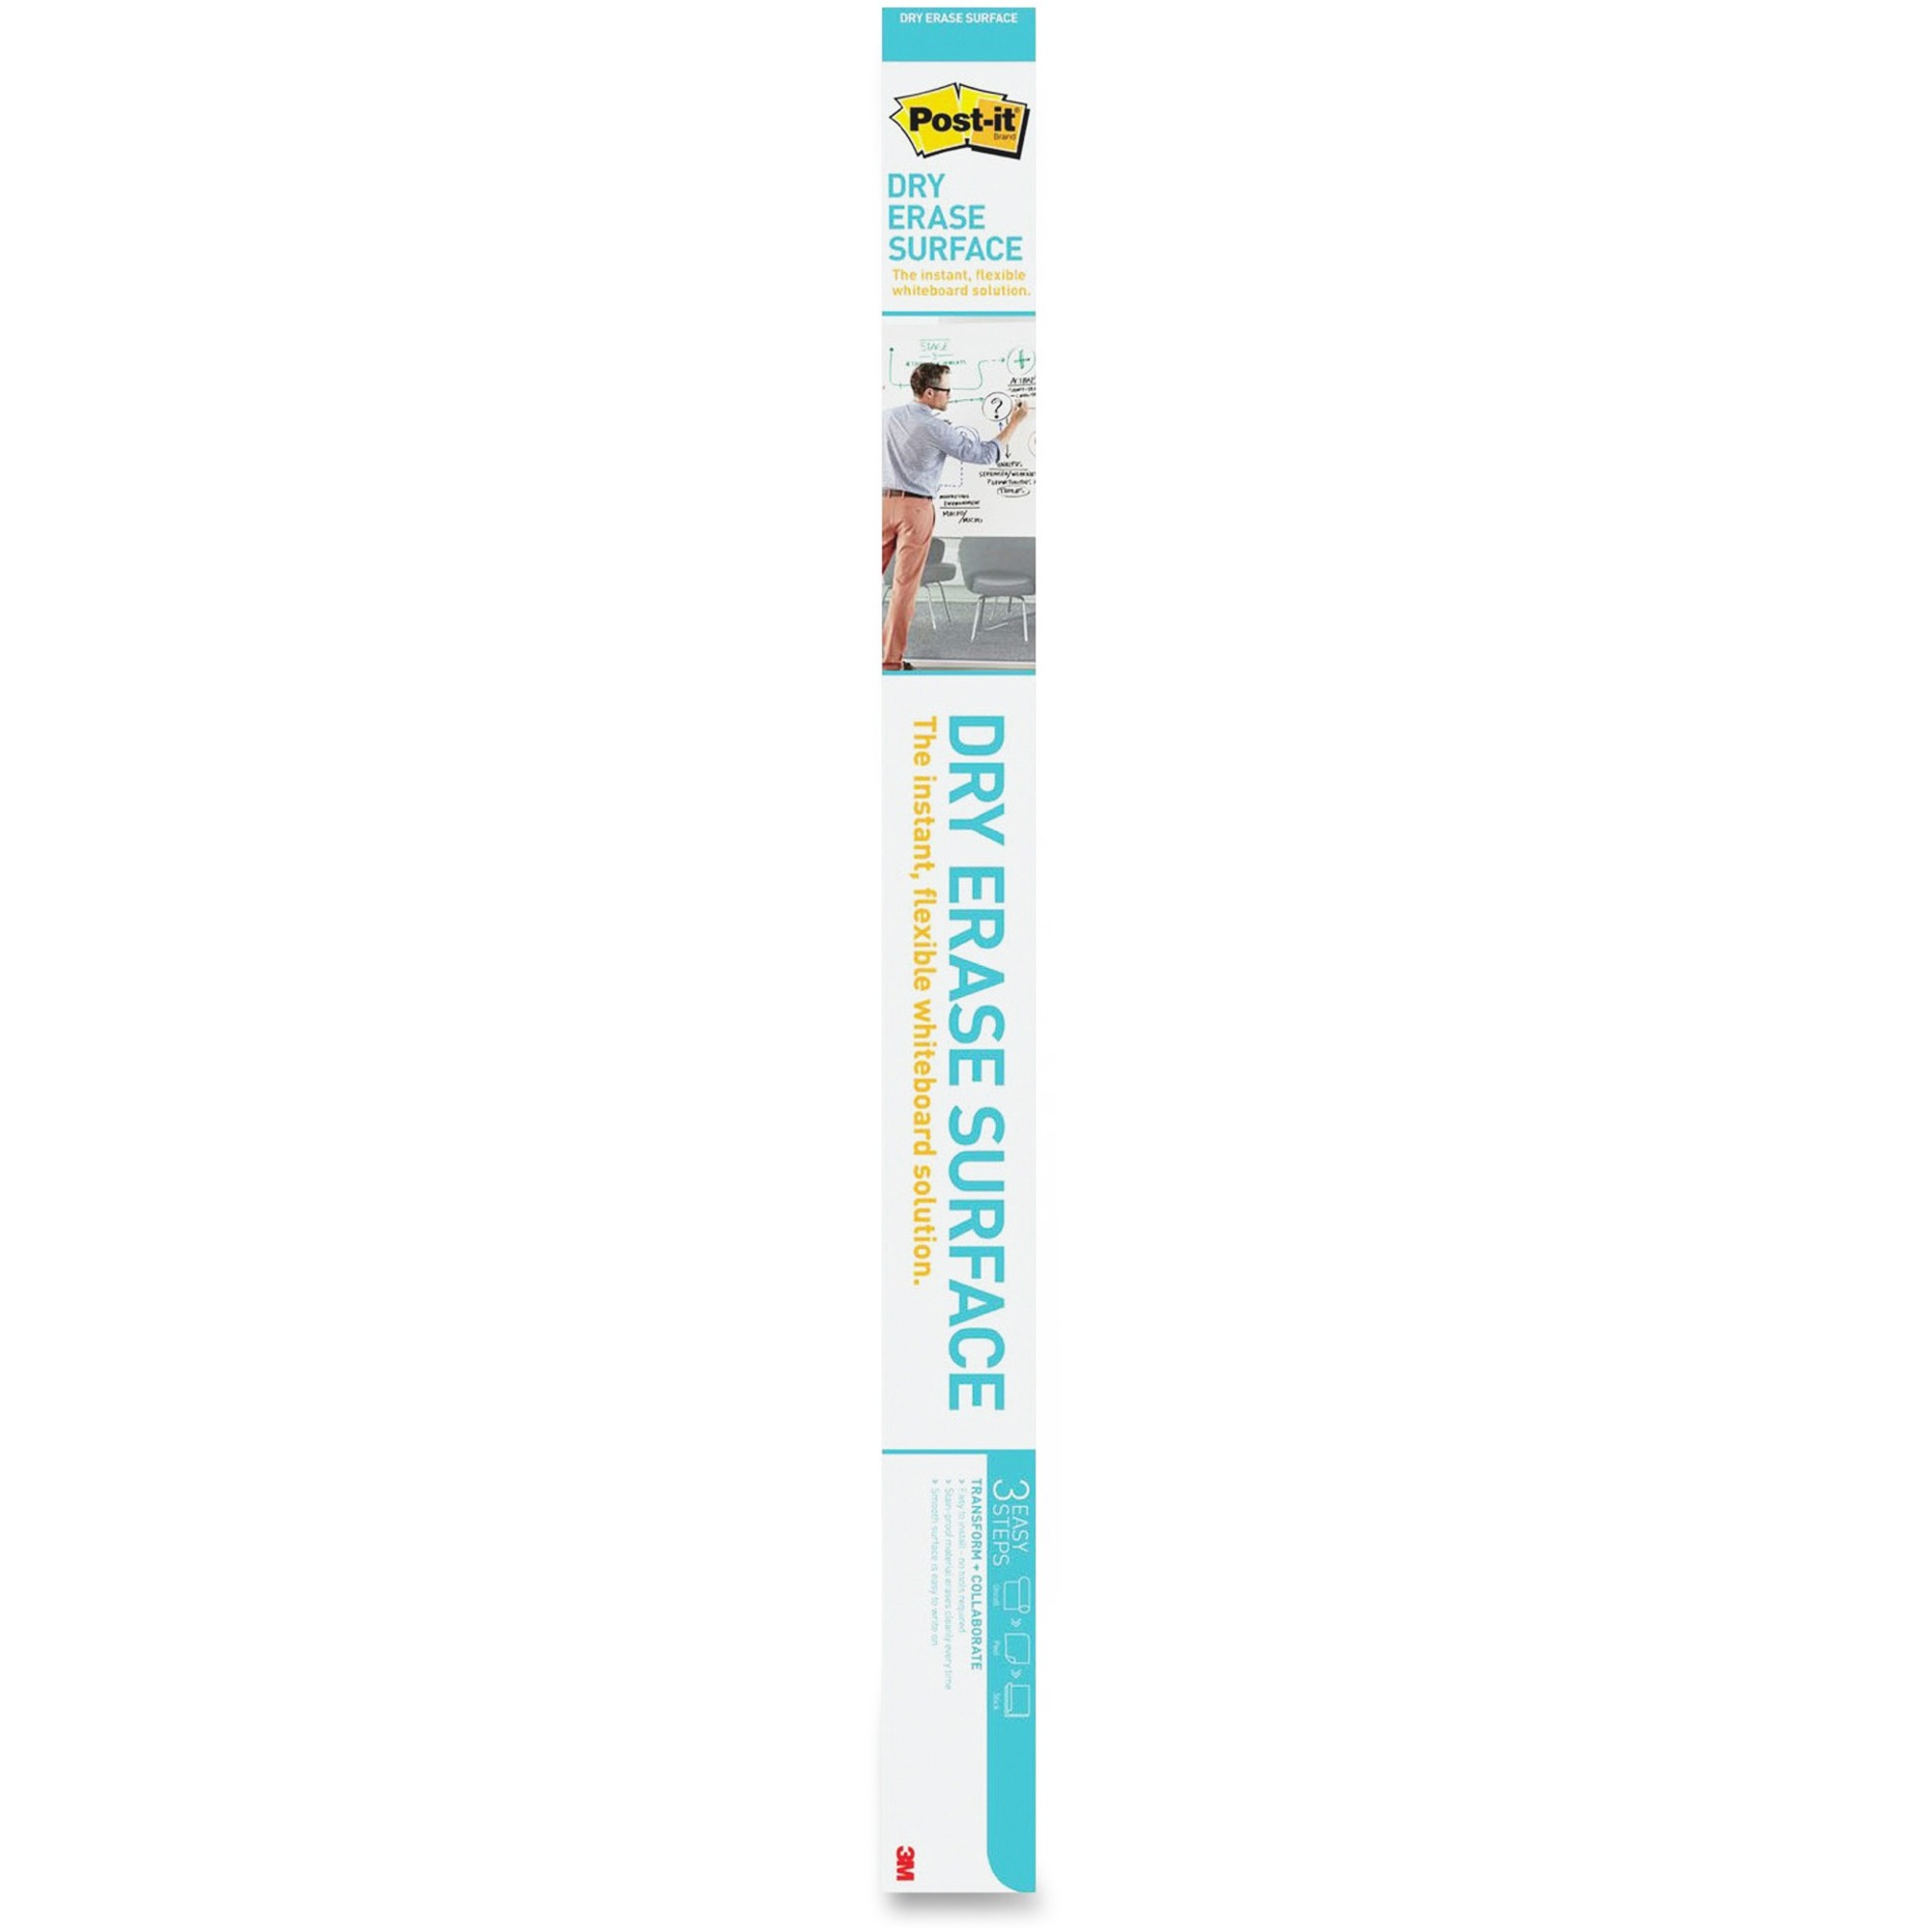 3M Post-it Self-stick Dry Erase Film Surface, 72 X 48, White - 48 (4 Ft) Width X 72 (6 Ft) Length - White - Rectangle - 1 / Pack